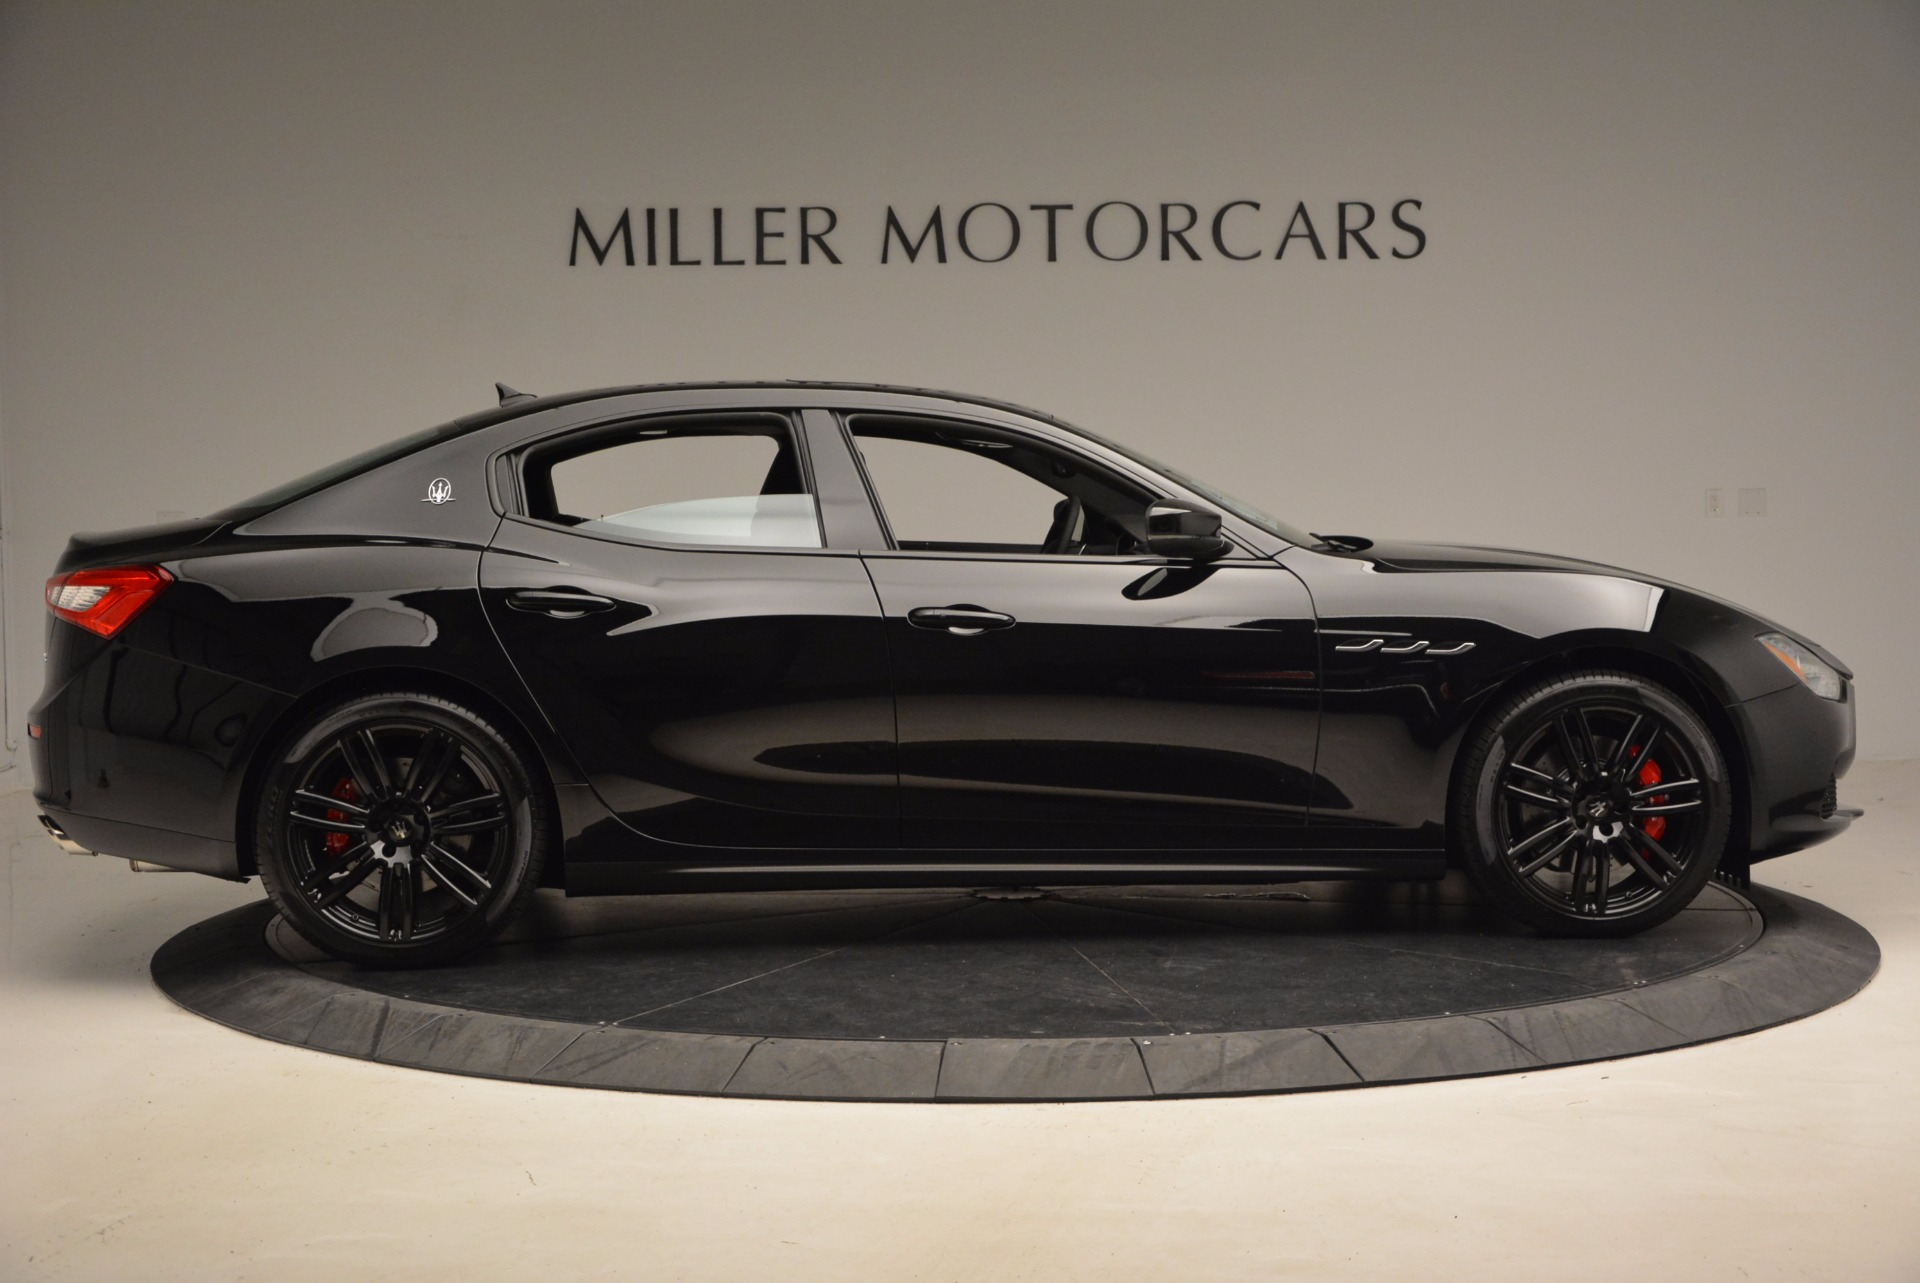 New 2017 Maserati Ghibli Nerissimo Edition S Q4 For Sale In Westport, CT 1420_p9